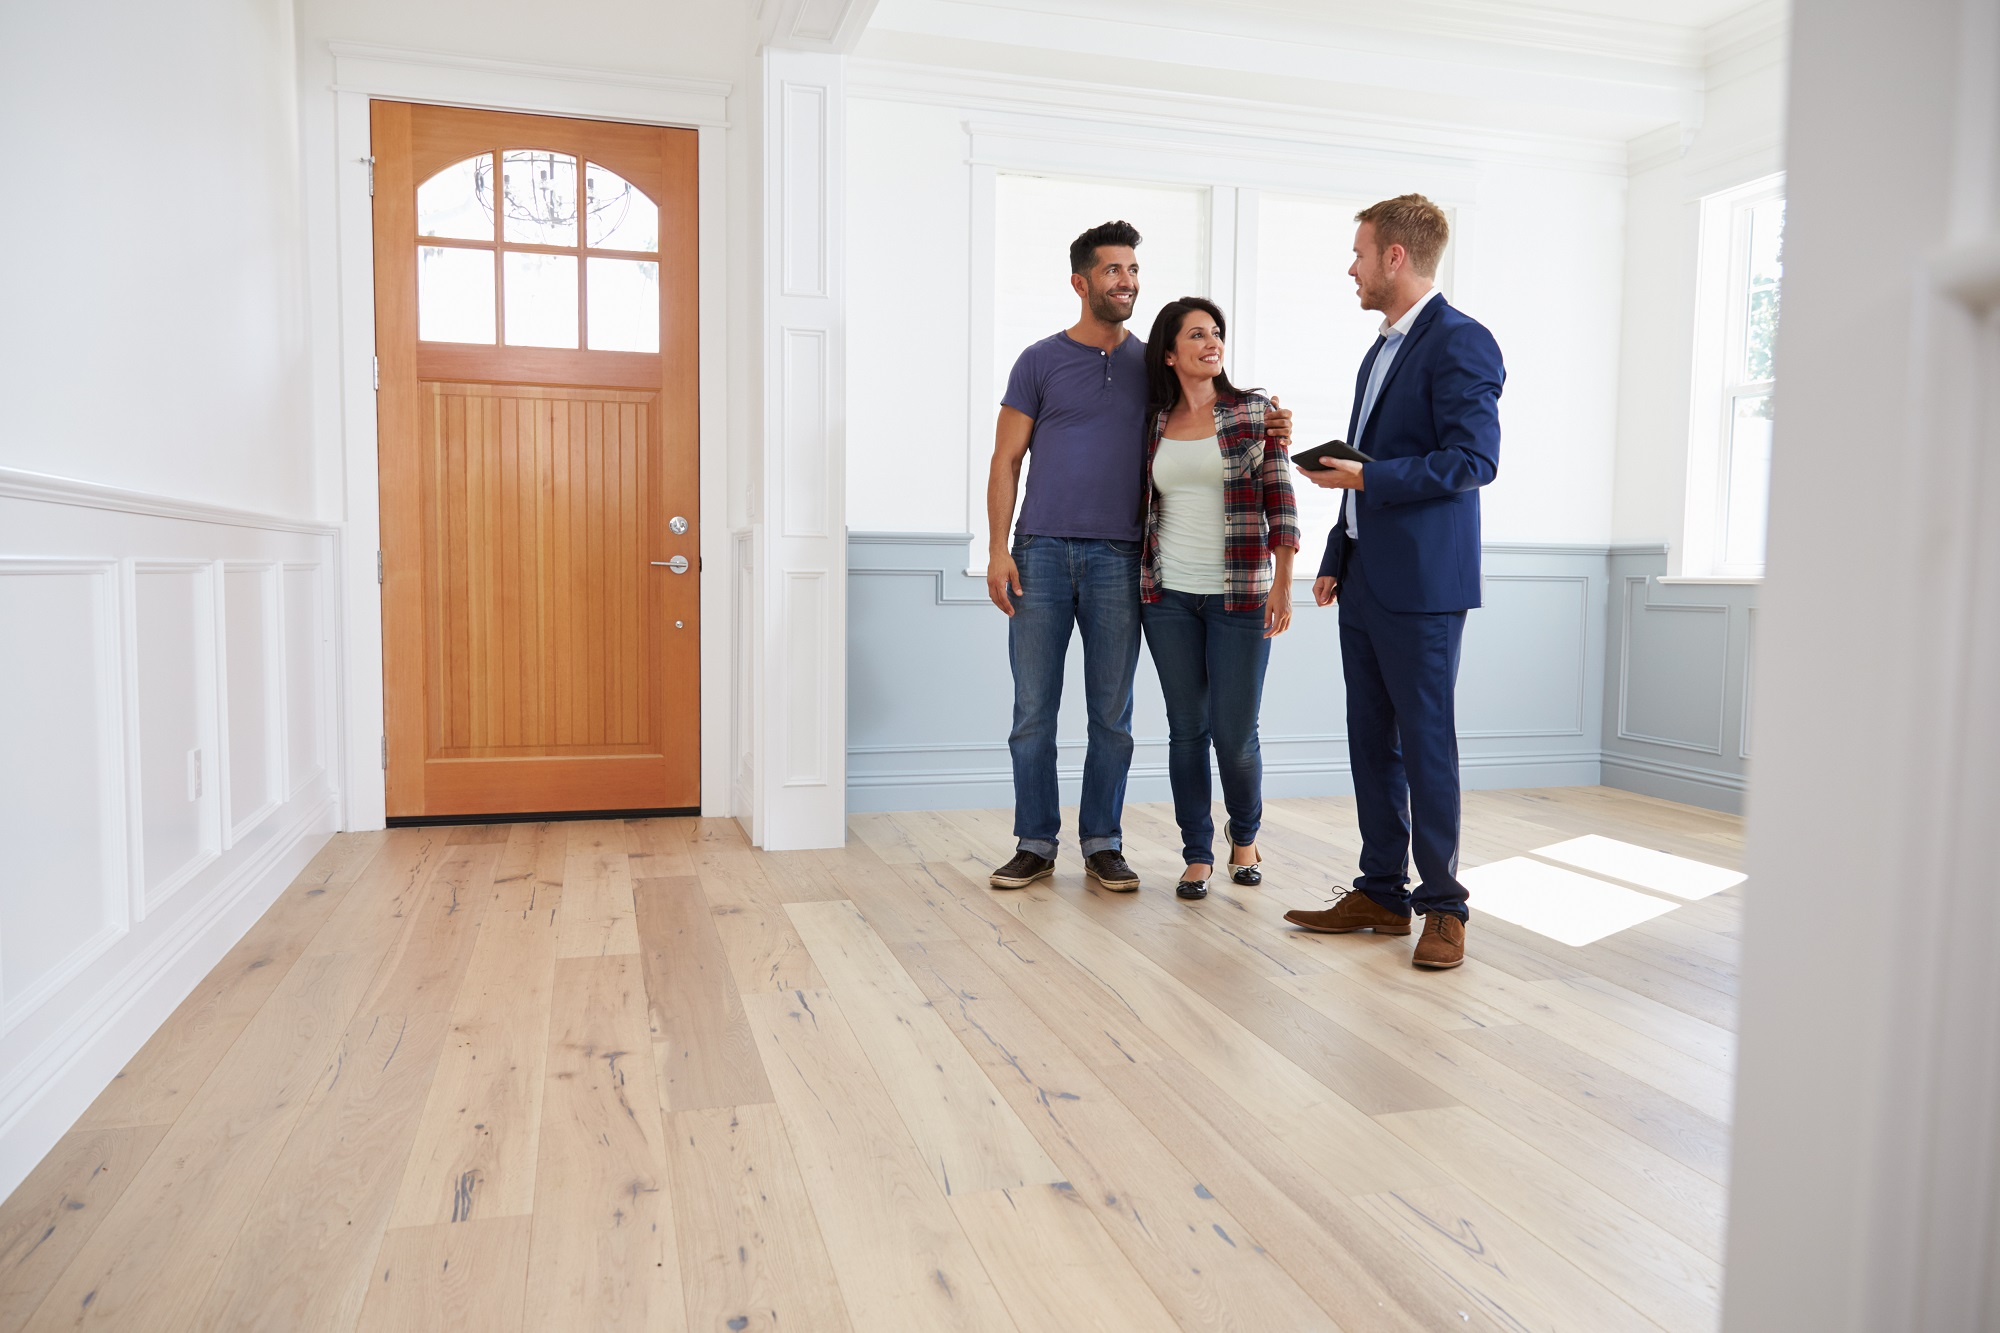 3 tips for showing your home